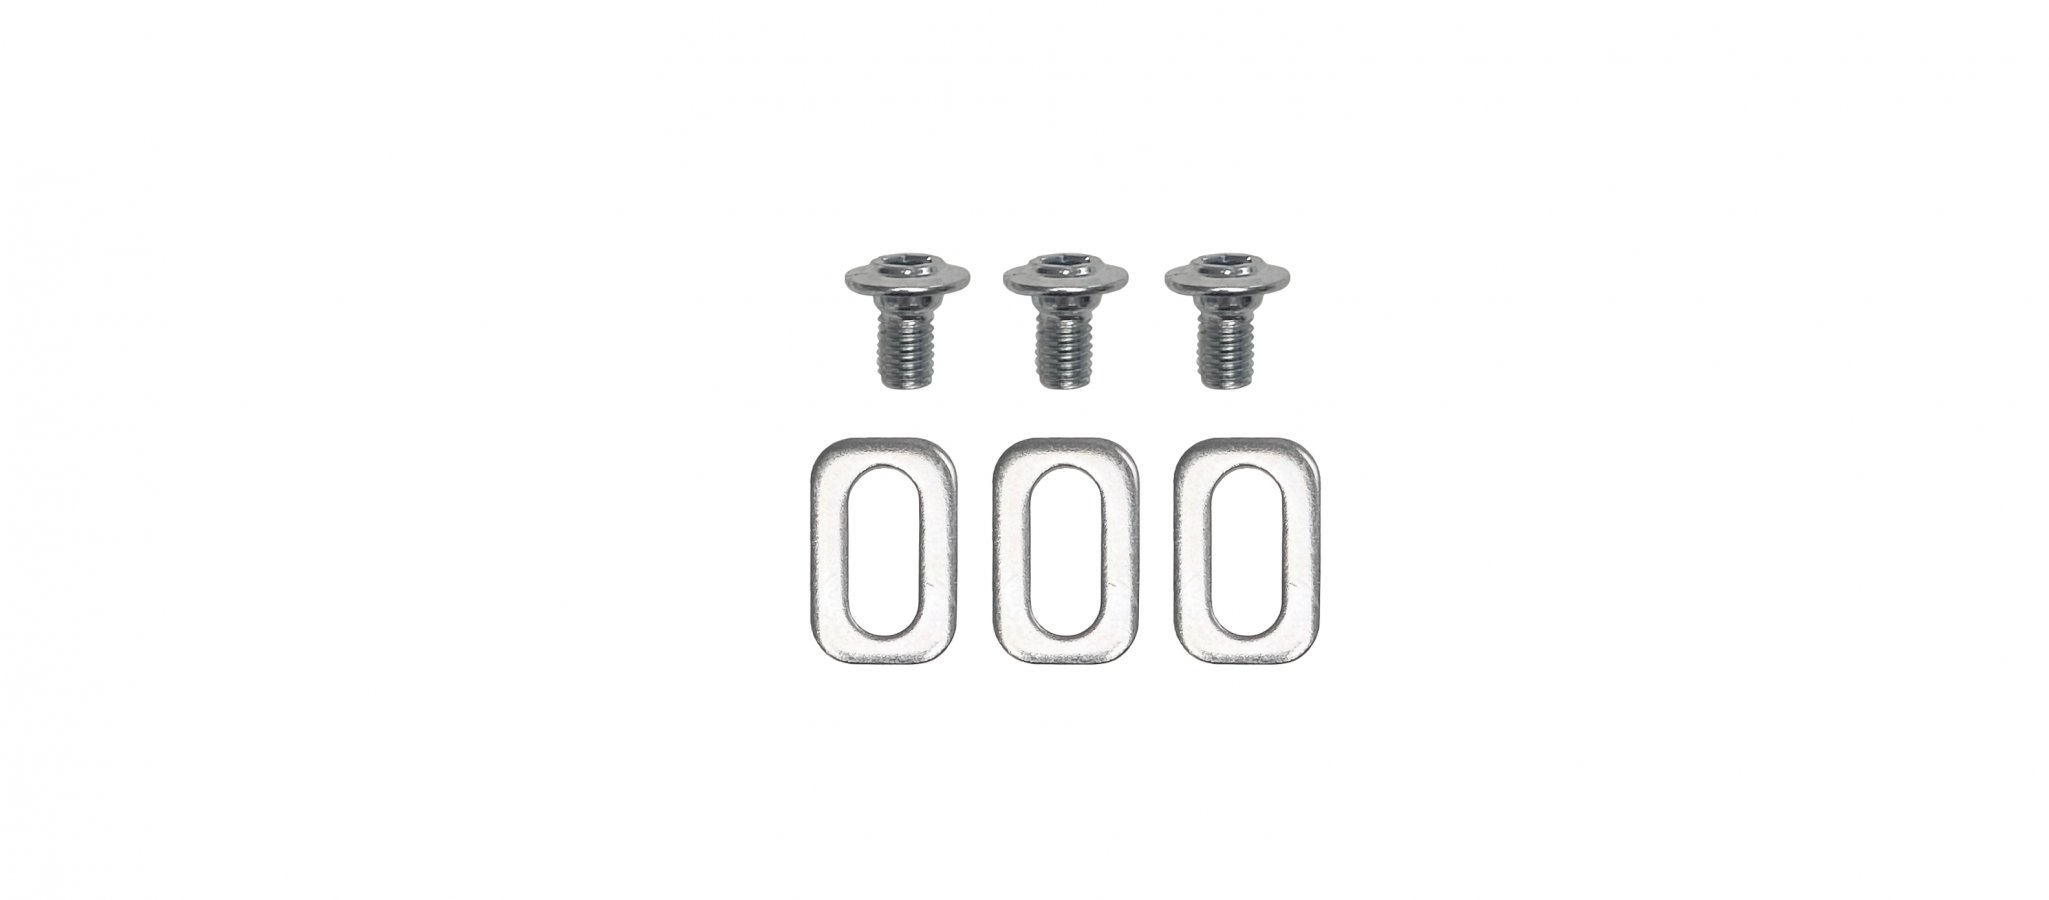 Screw kit -Delta and Keo cleats